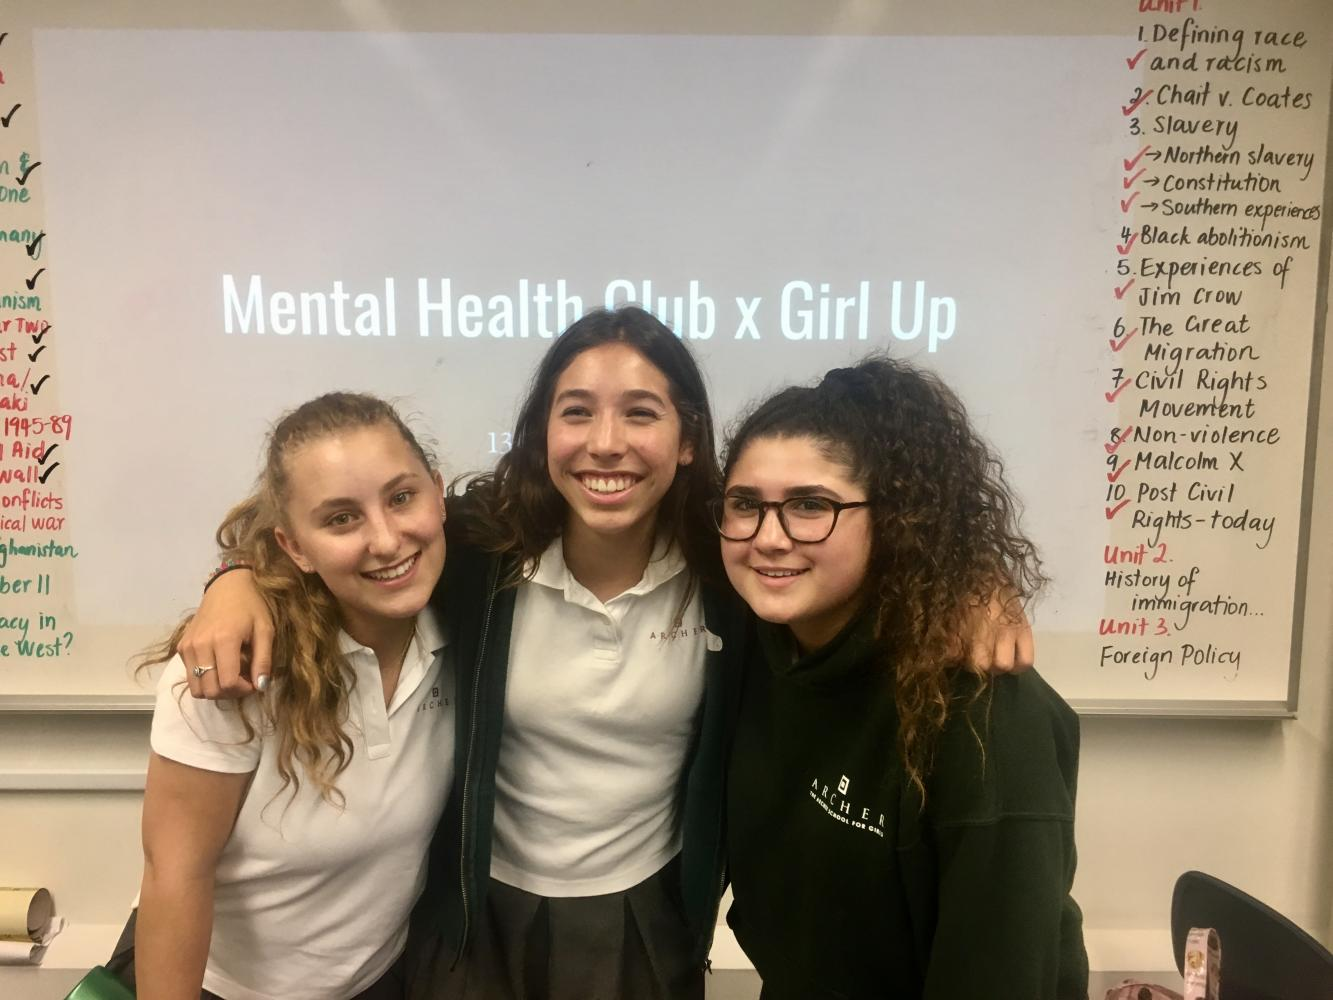 The Girl Up and Mental Heath clubs teamed up to have a discussion about